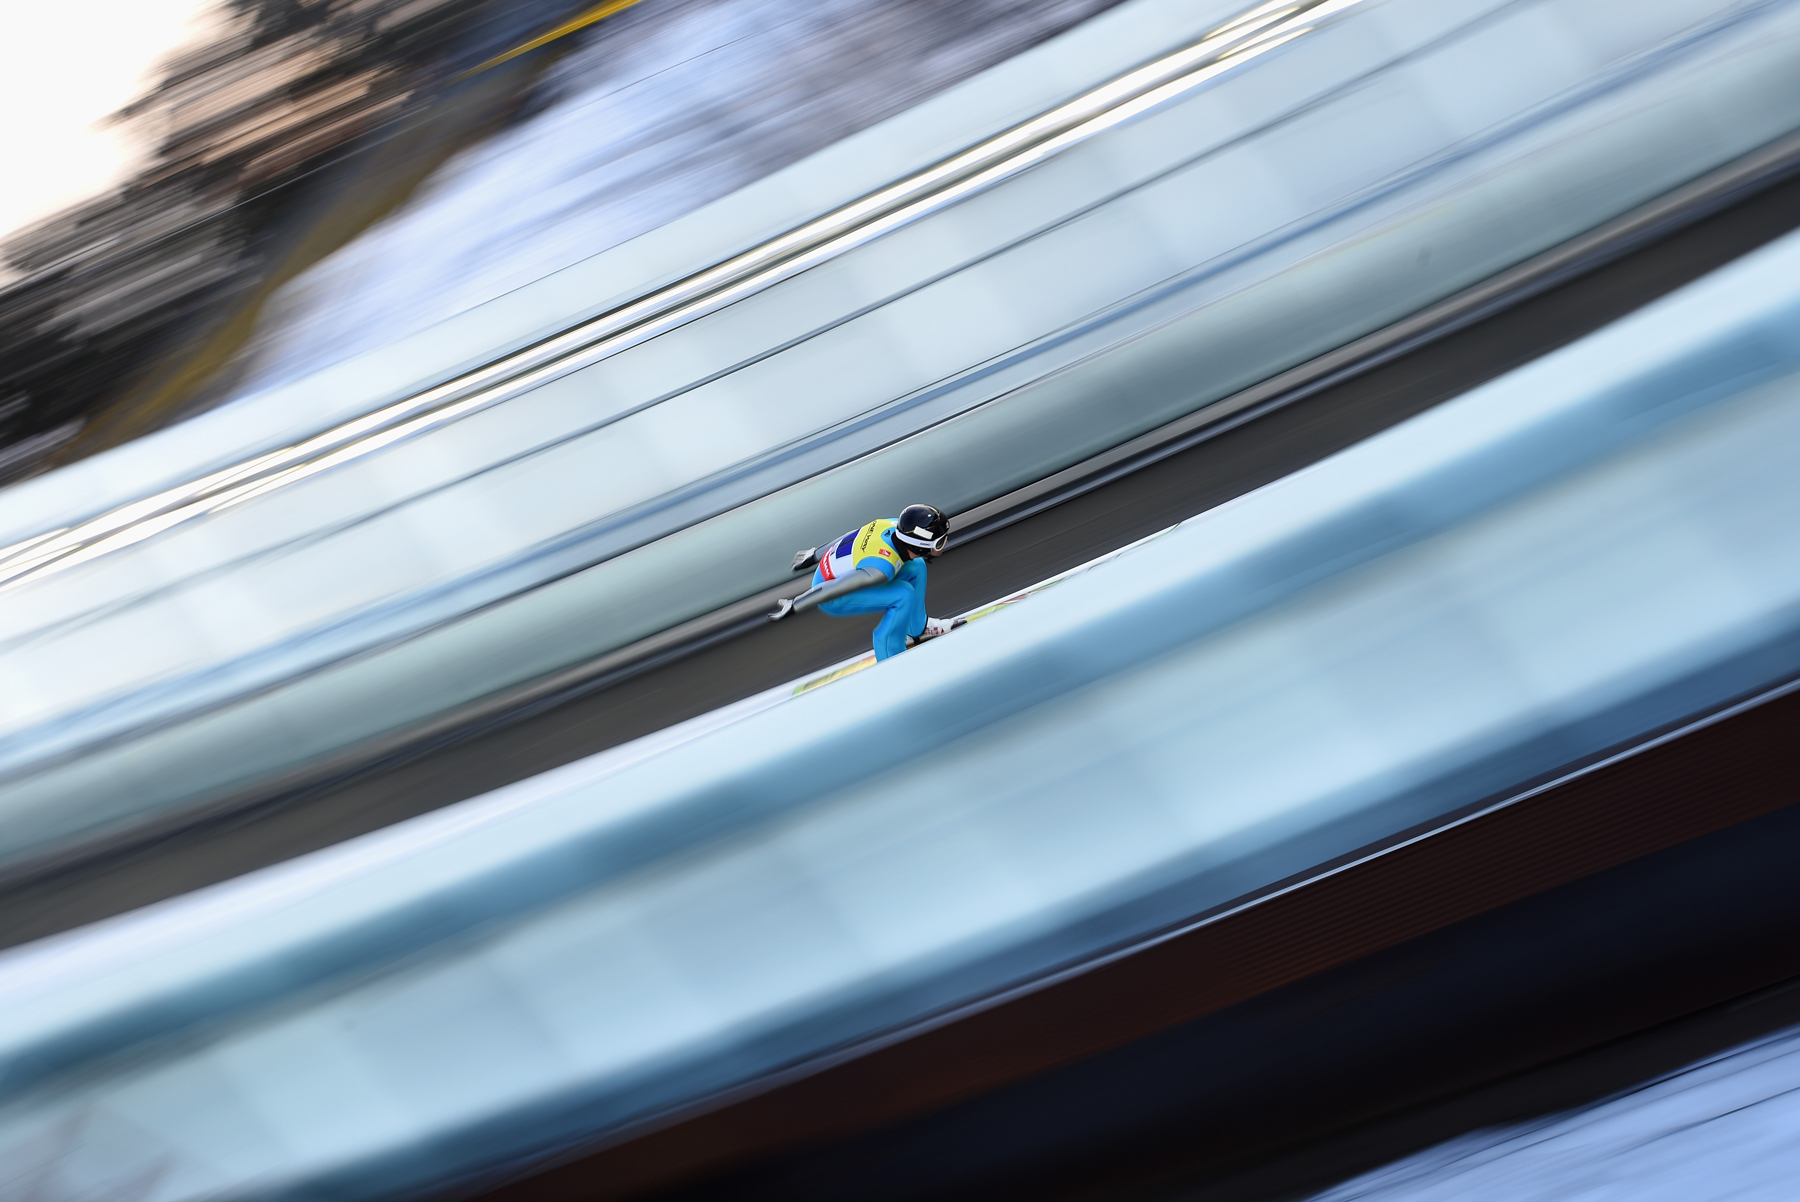 Nordic Combined World Cup Criteria